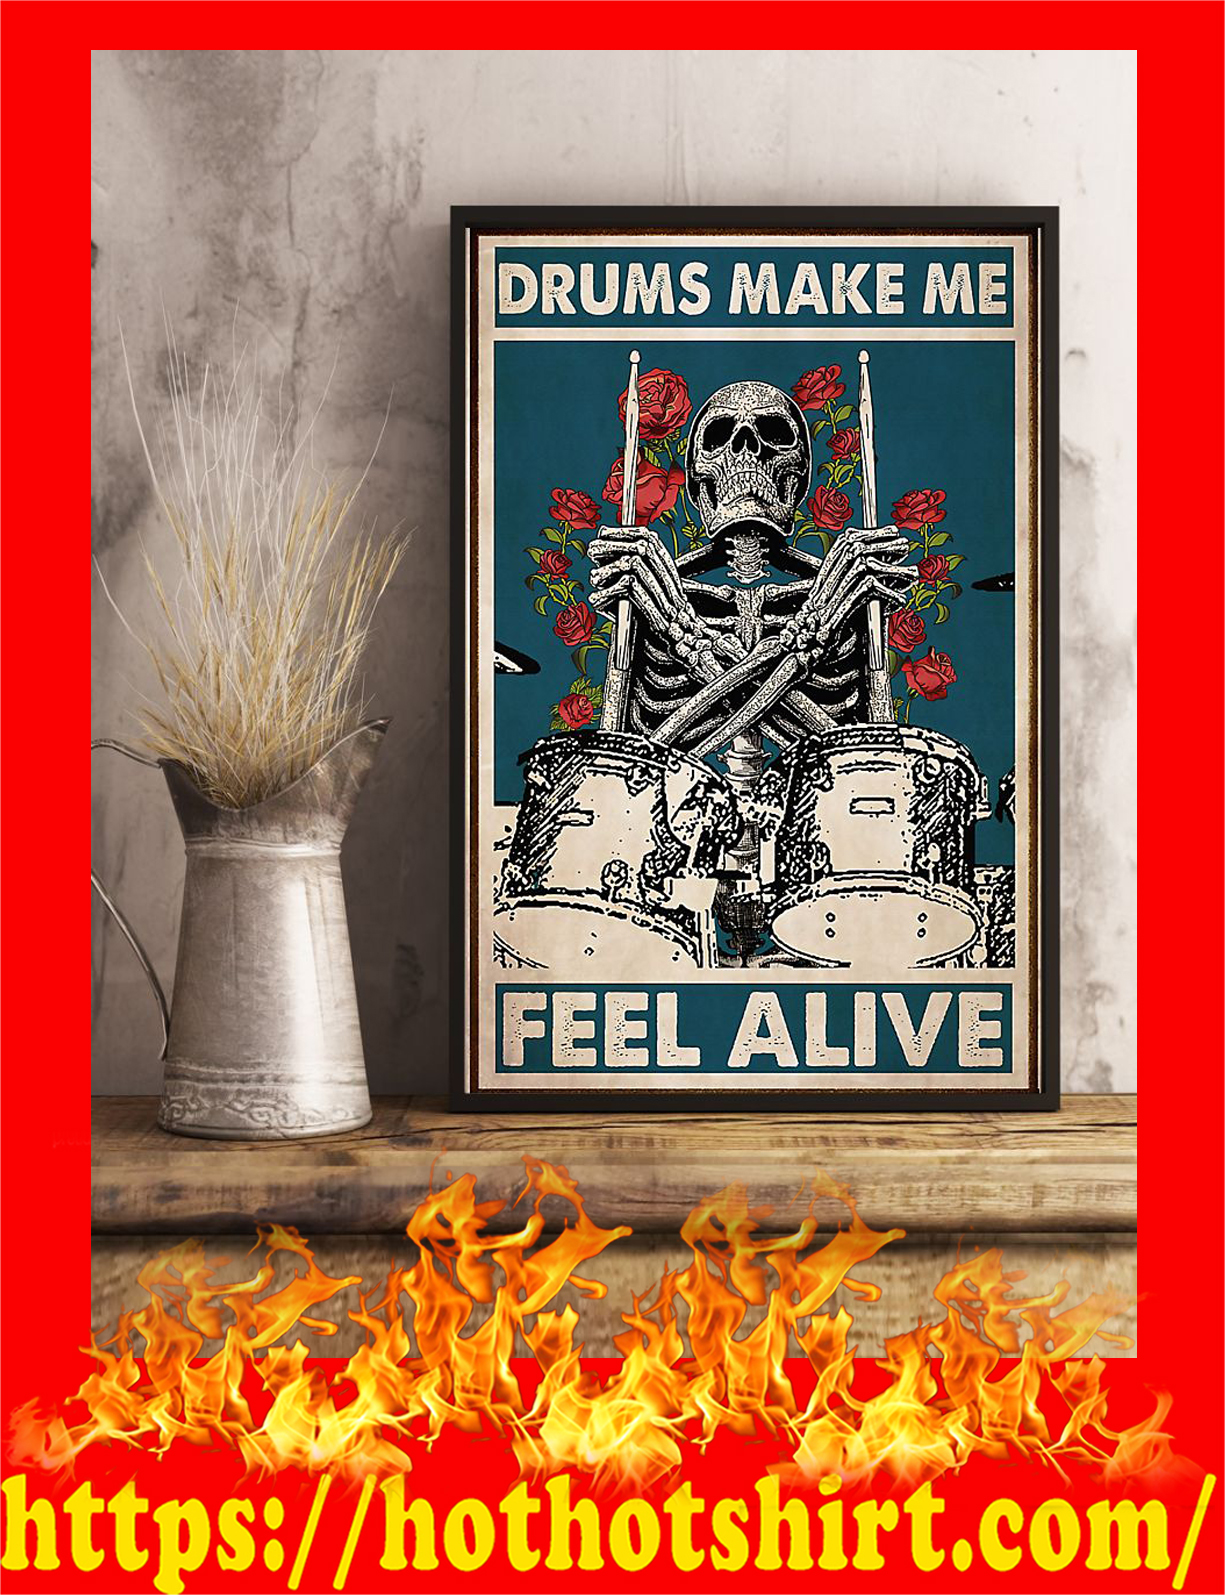 Skeleton drummer drums make me feel alive poster - Pic 1